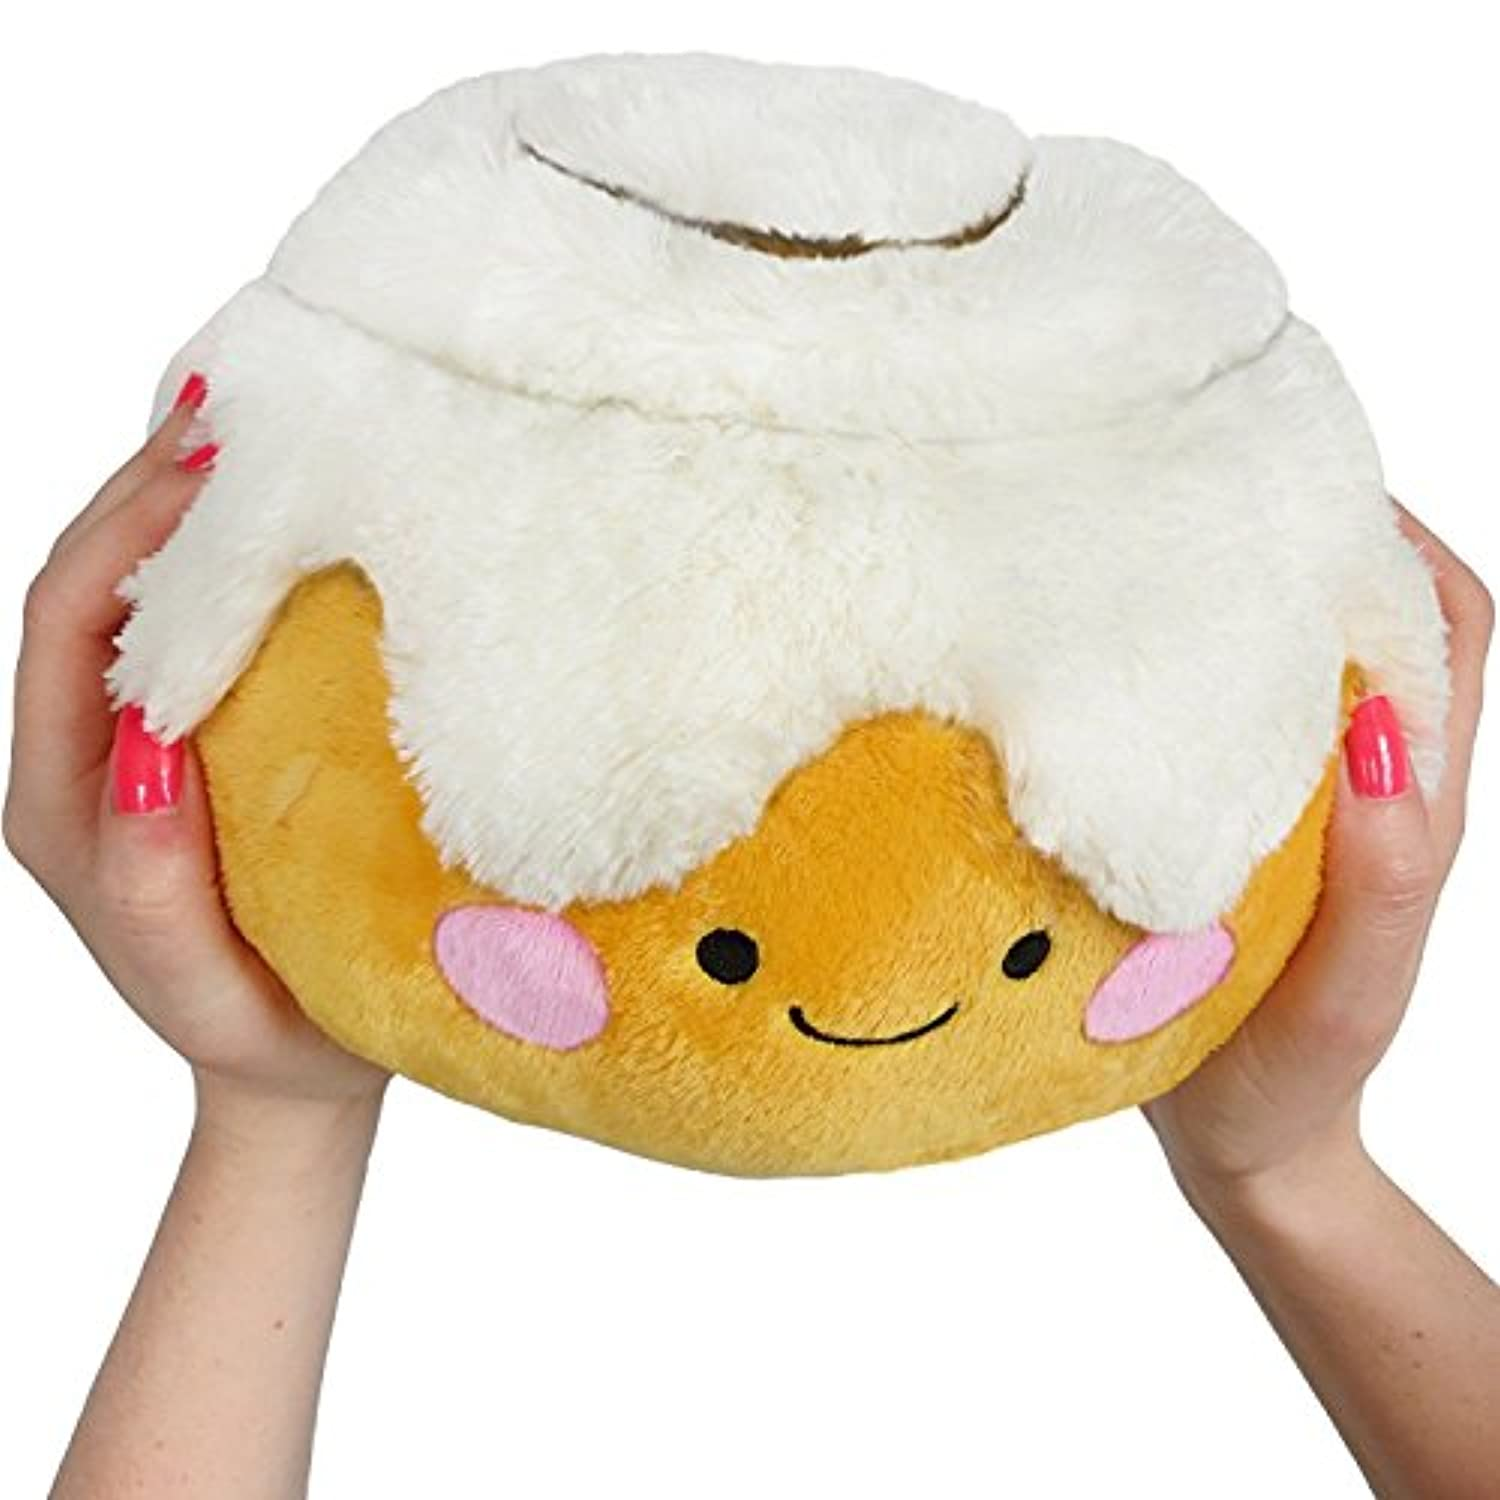 Squishable Cinnamon Bun Plush, Mini 7 by Squishable